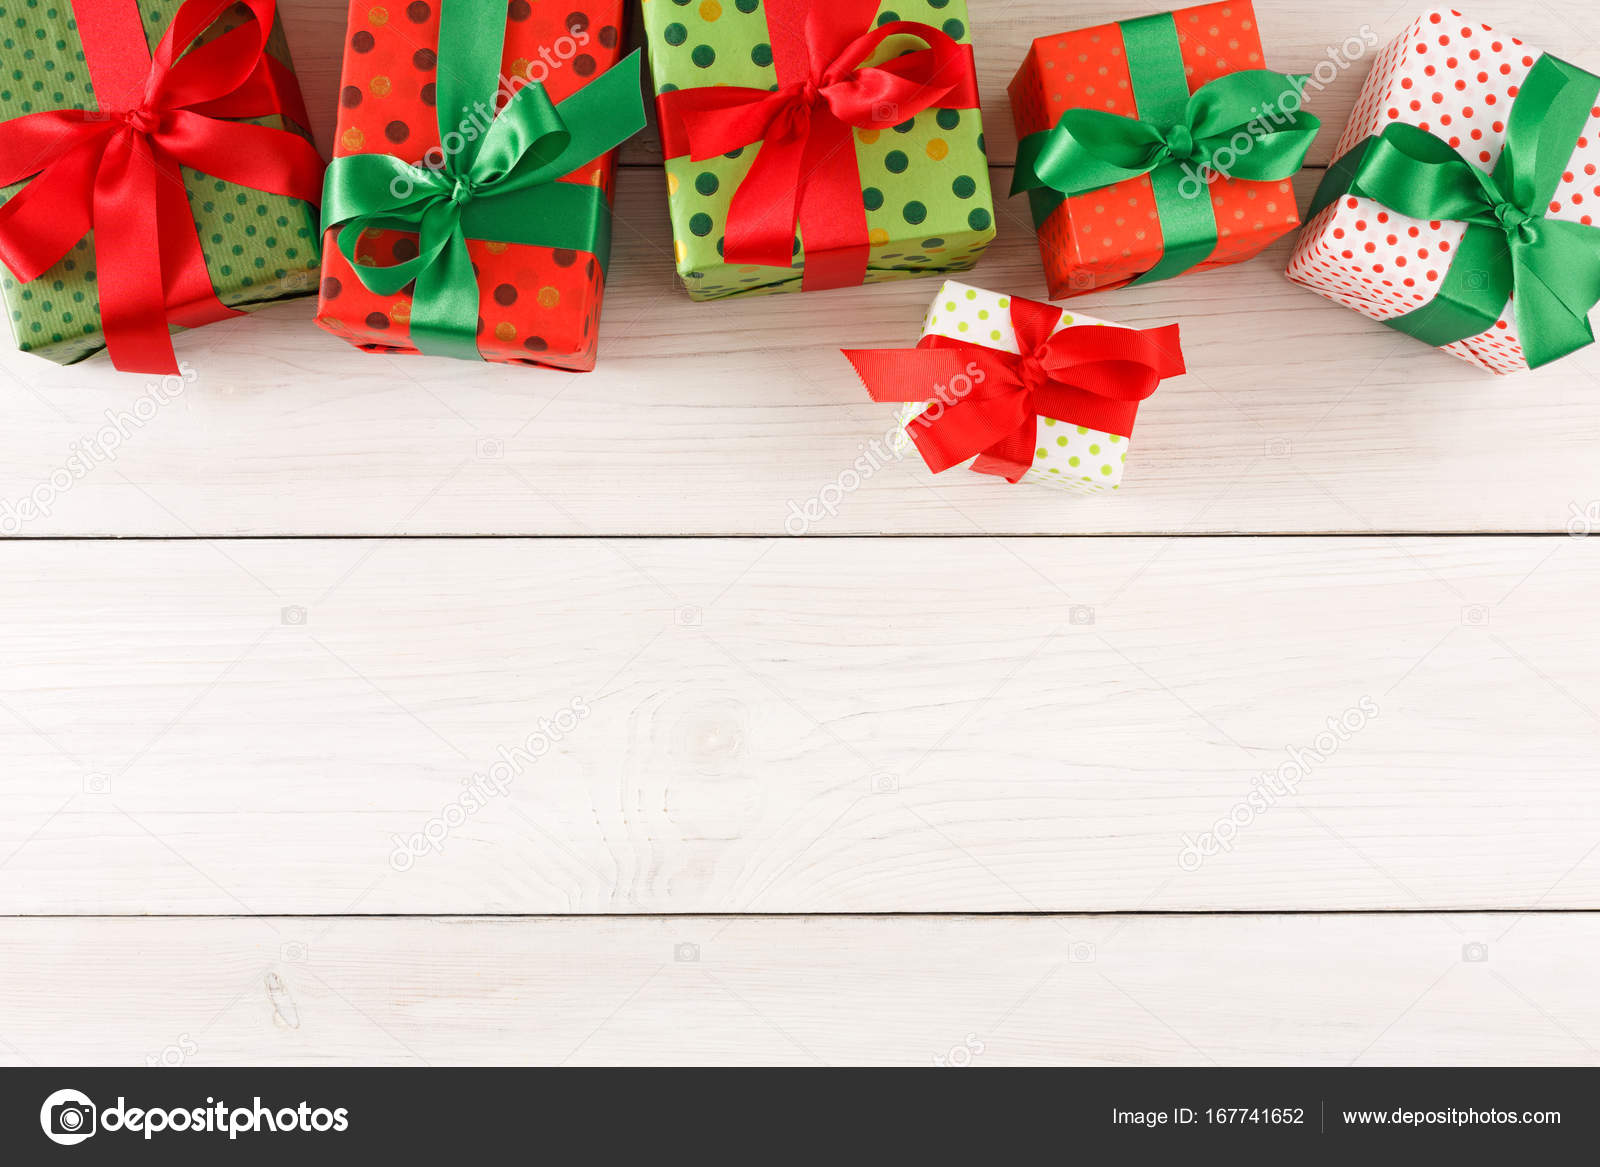 Christmas gift boxes top view on wood table background.u2013 stock image  sc 1 st  Depositphotos & Christmas gift boxes top view on wood table background. u2014 Stock ...